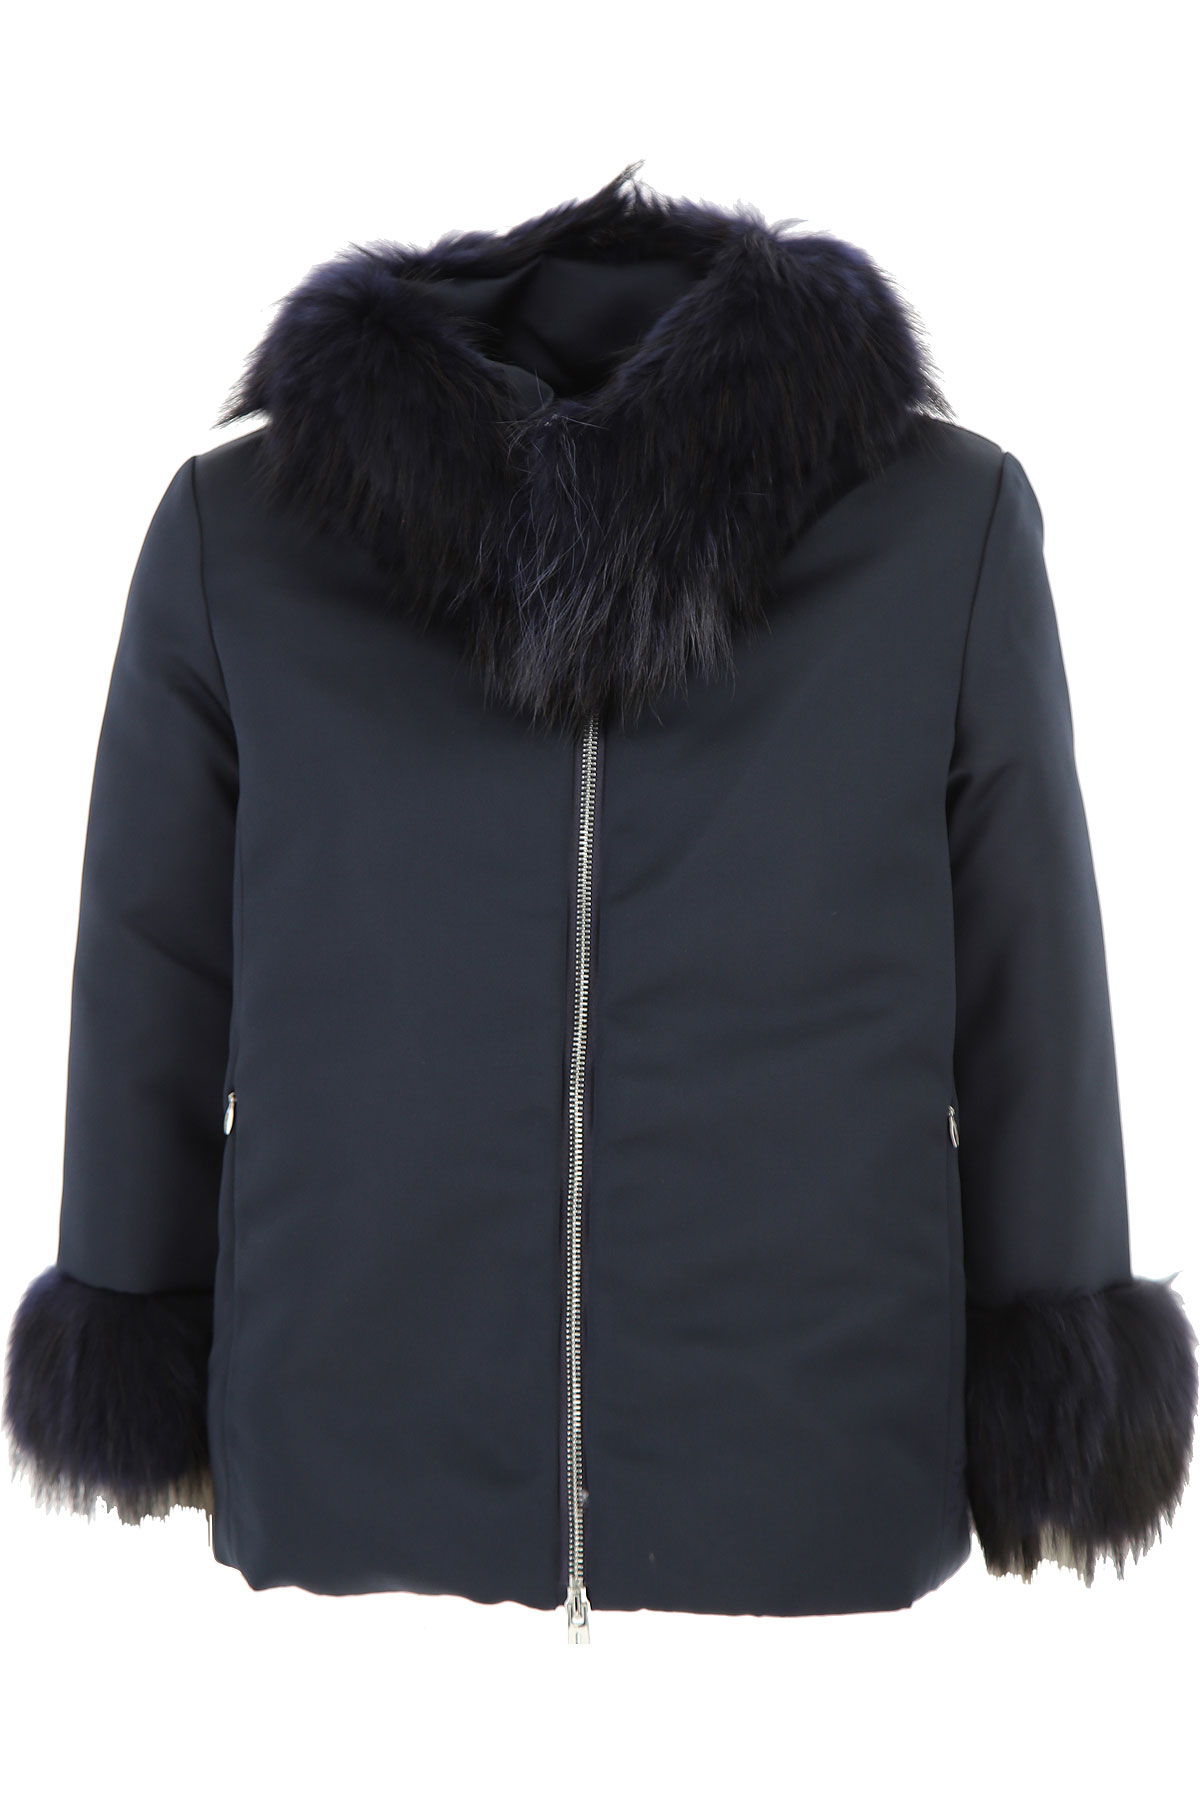 Image of ADD Down Jacket for Women, Puffer Ski Jacket On Sale, navy, polyester, 2017, IT 42 - US 4 - F 38 IT 44 - US 6 - F 40 IT 46 - US 8 - F 42